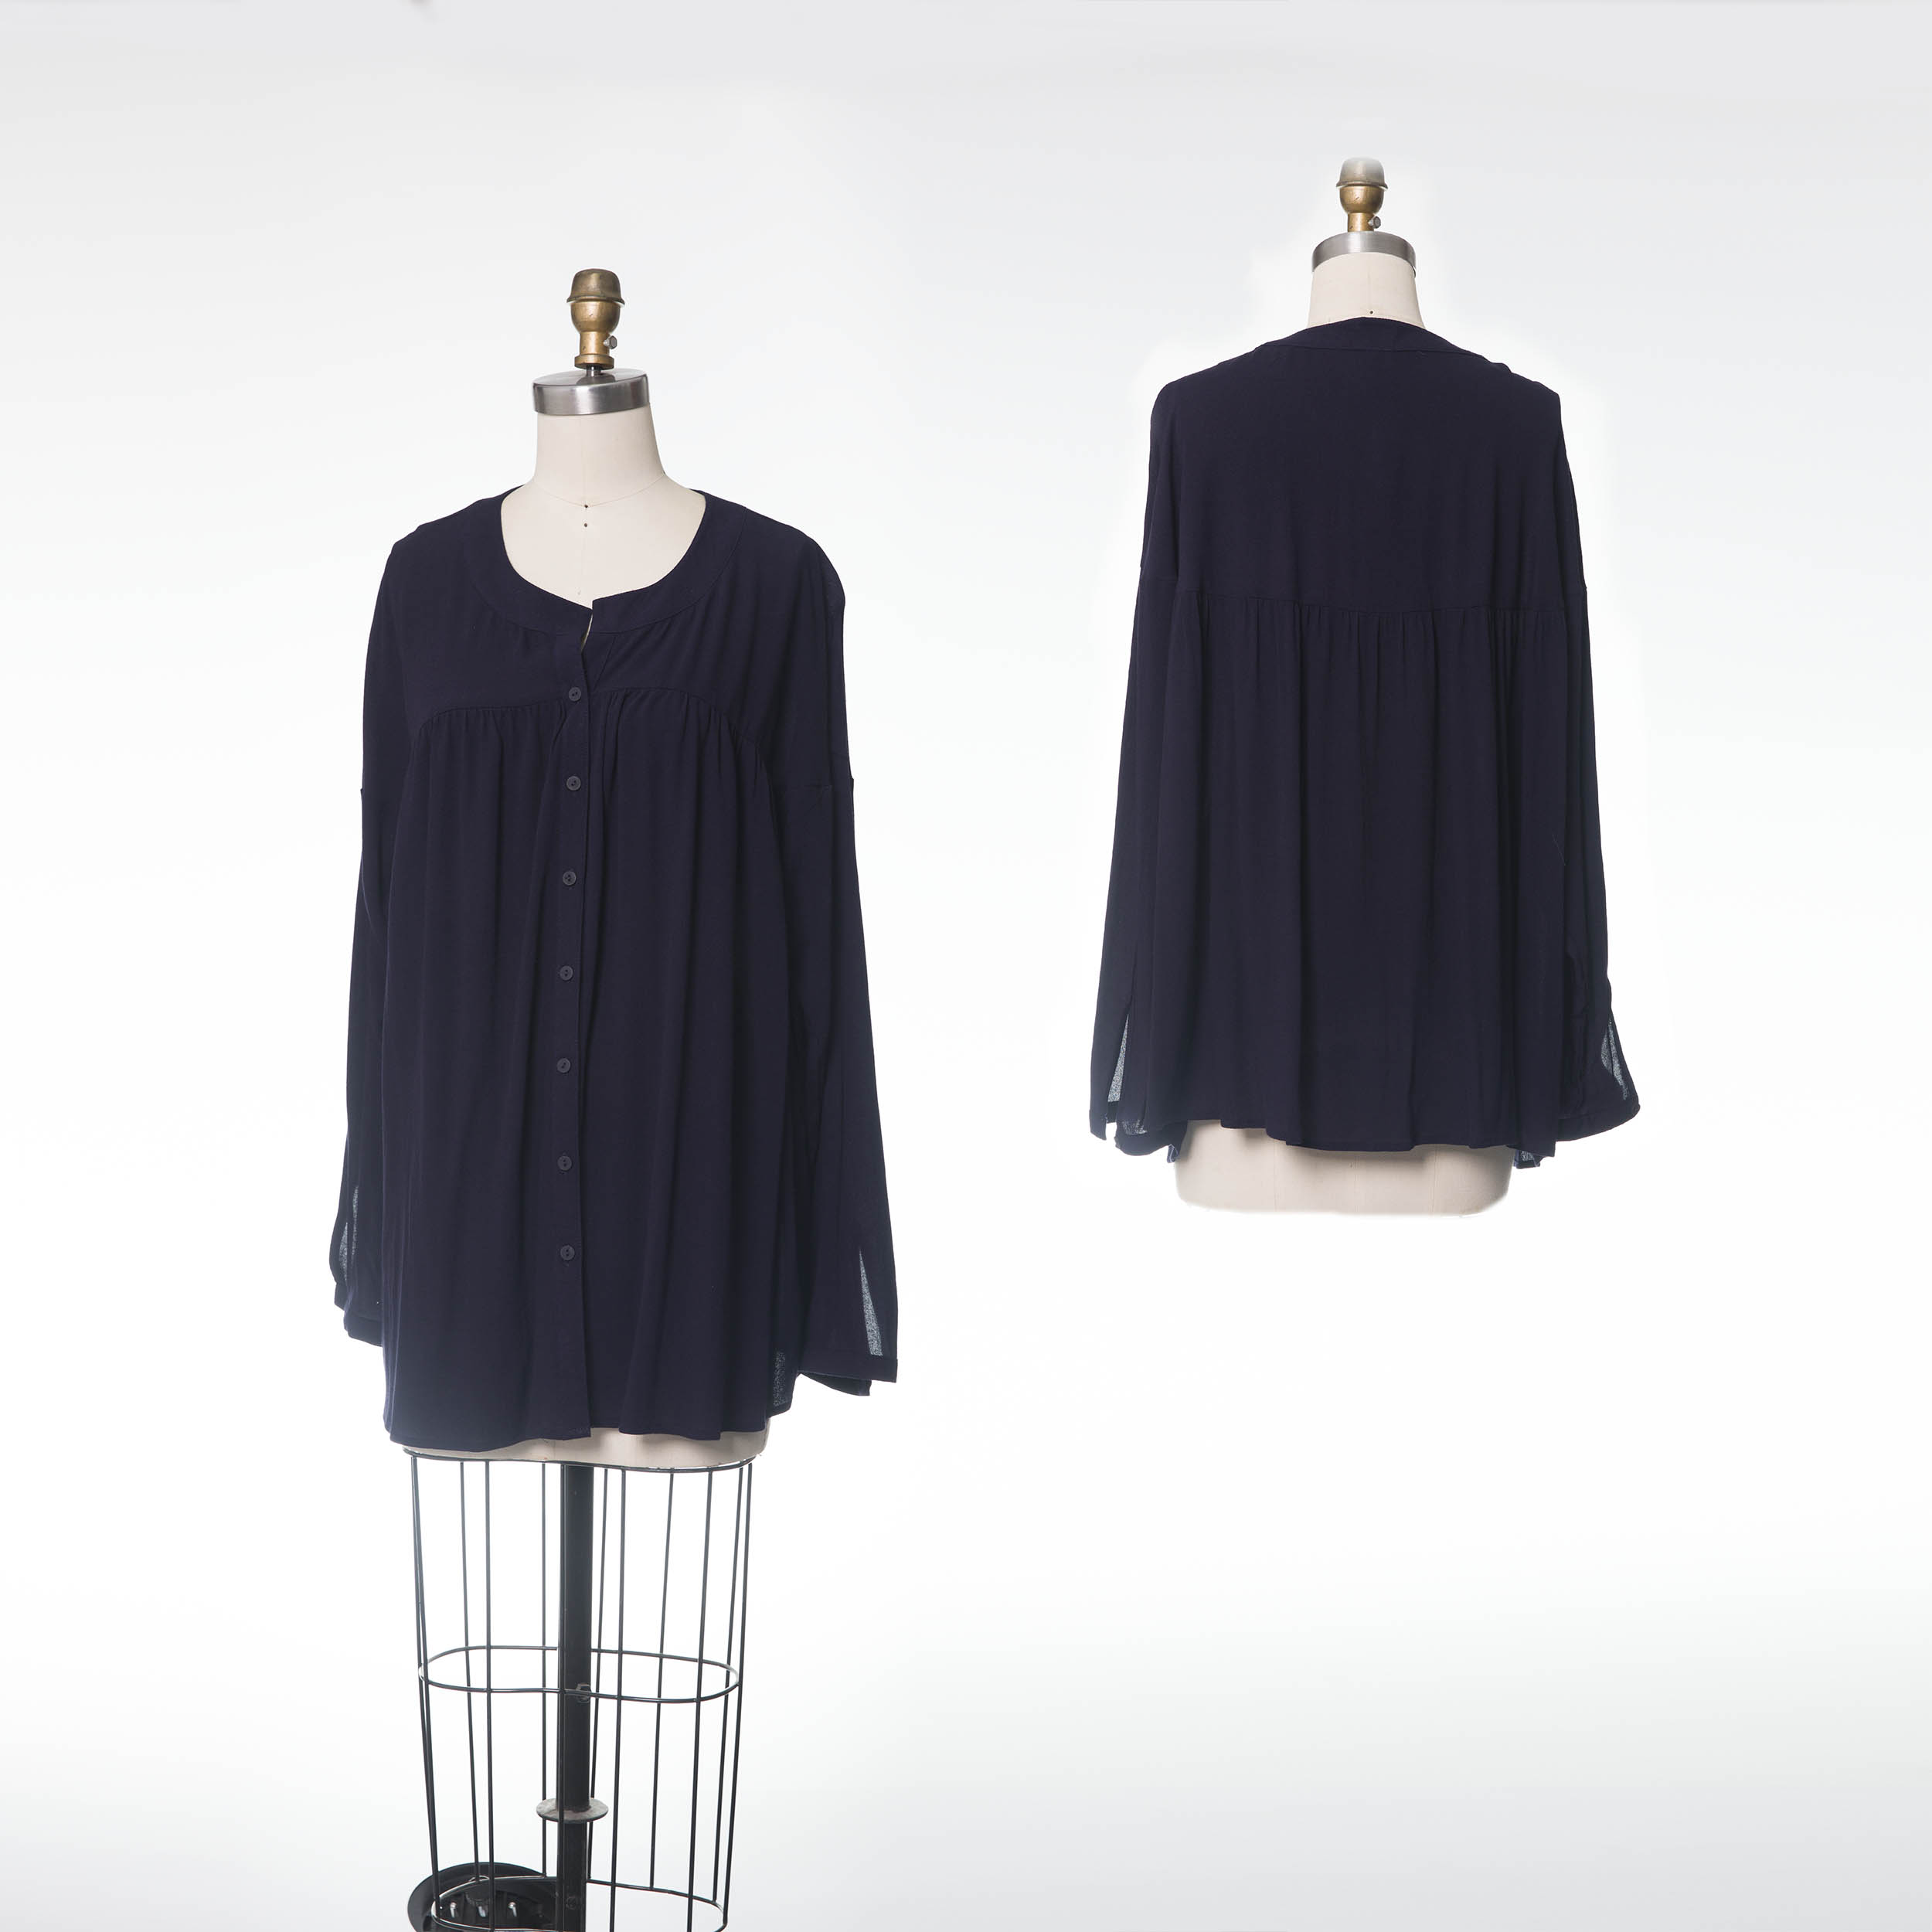 BLOUSE 784368 B -DA NAVY